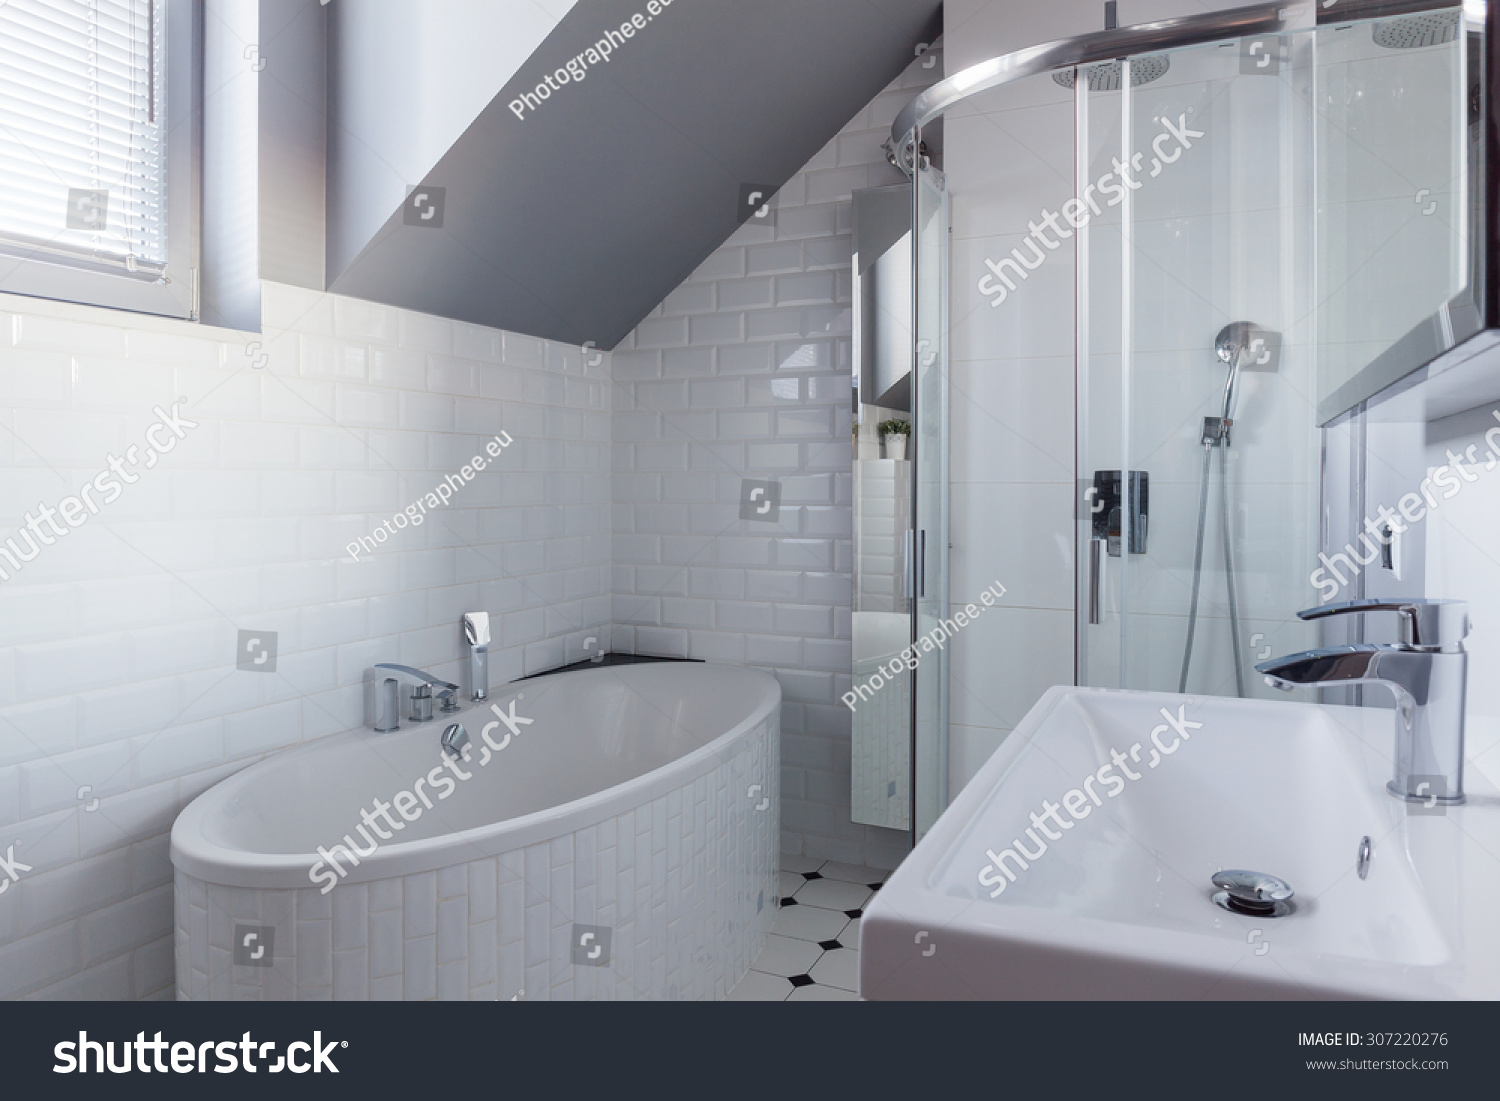 Bathroom in a luxurious apartment downtown. White and grey colors ...